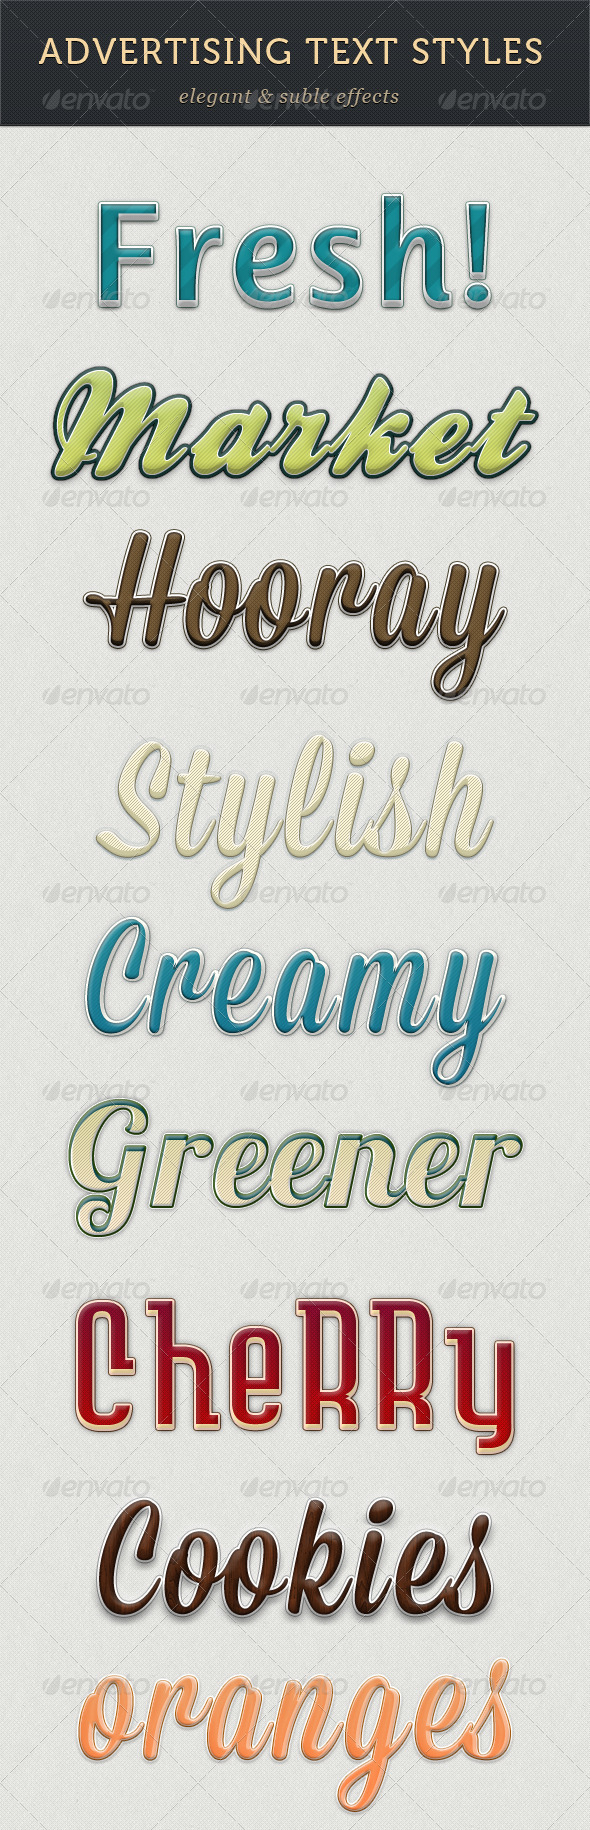 GraphicRiver Advertising Text Styles 3234325